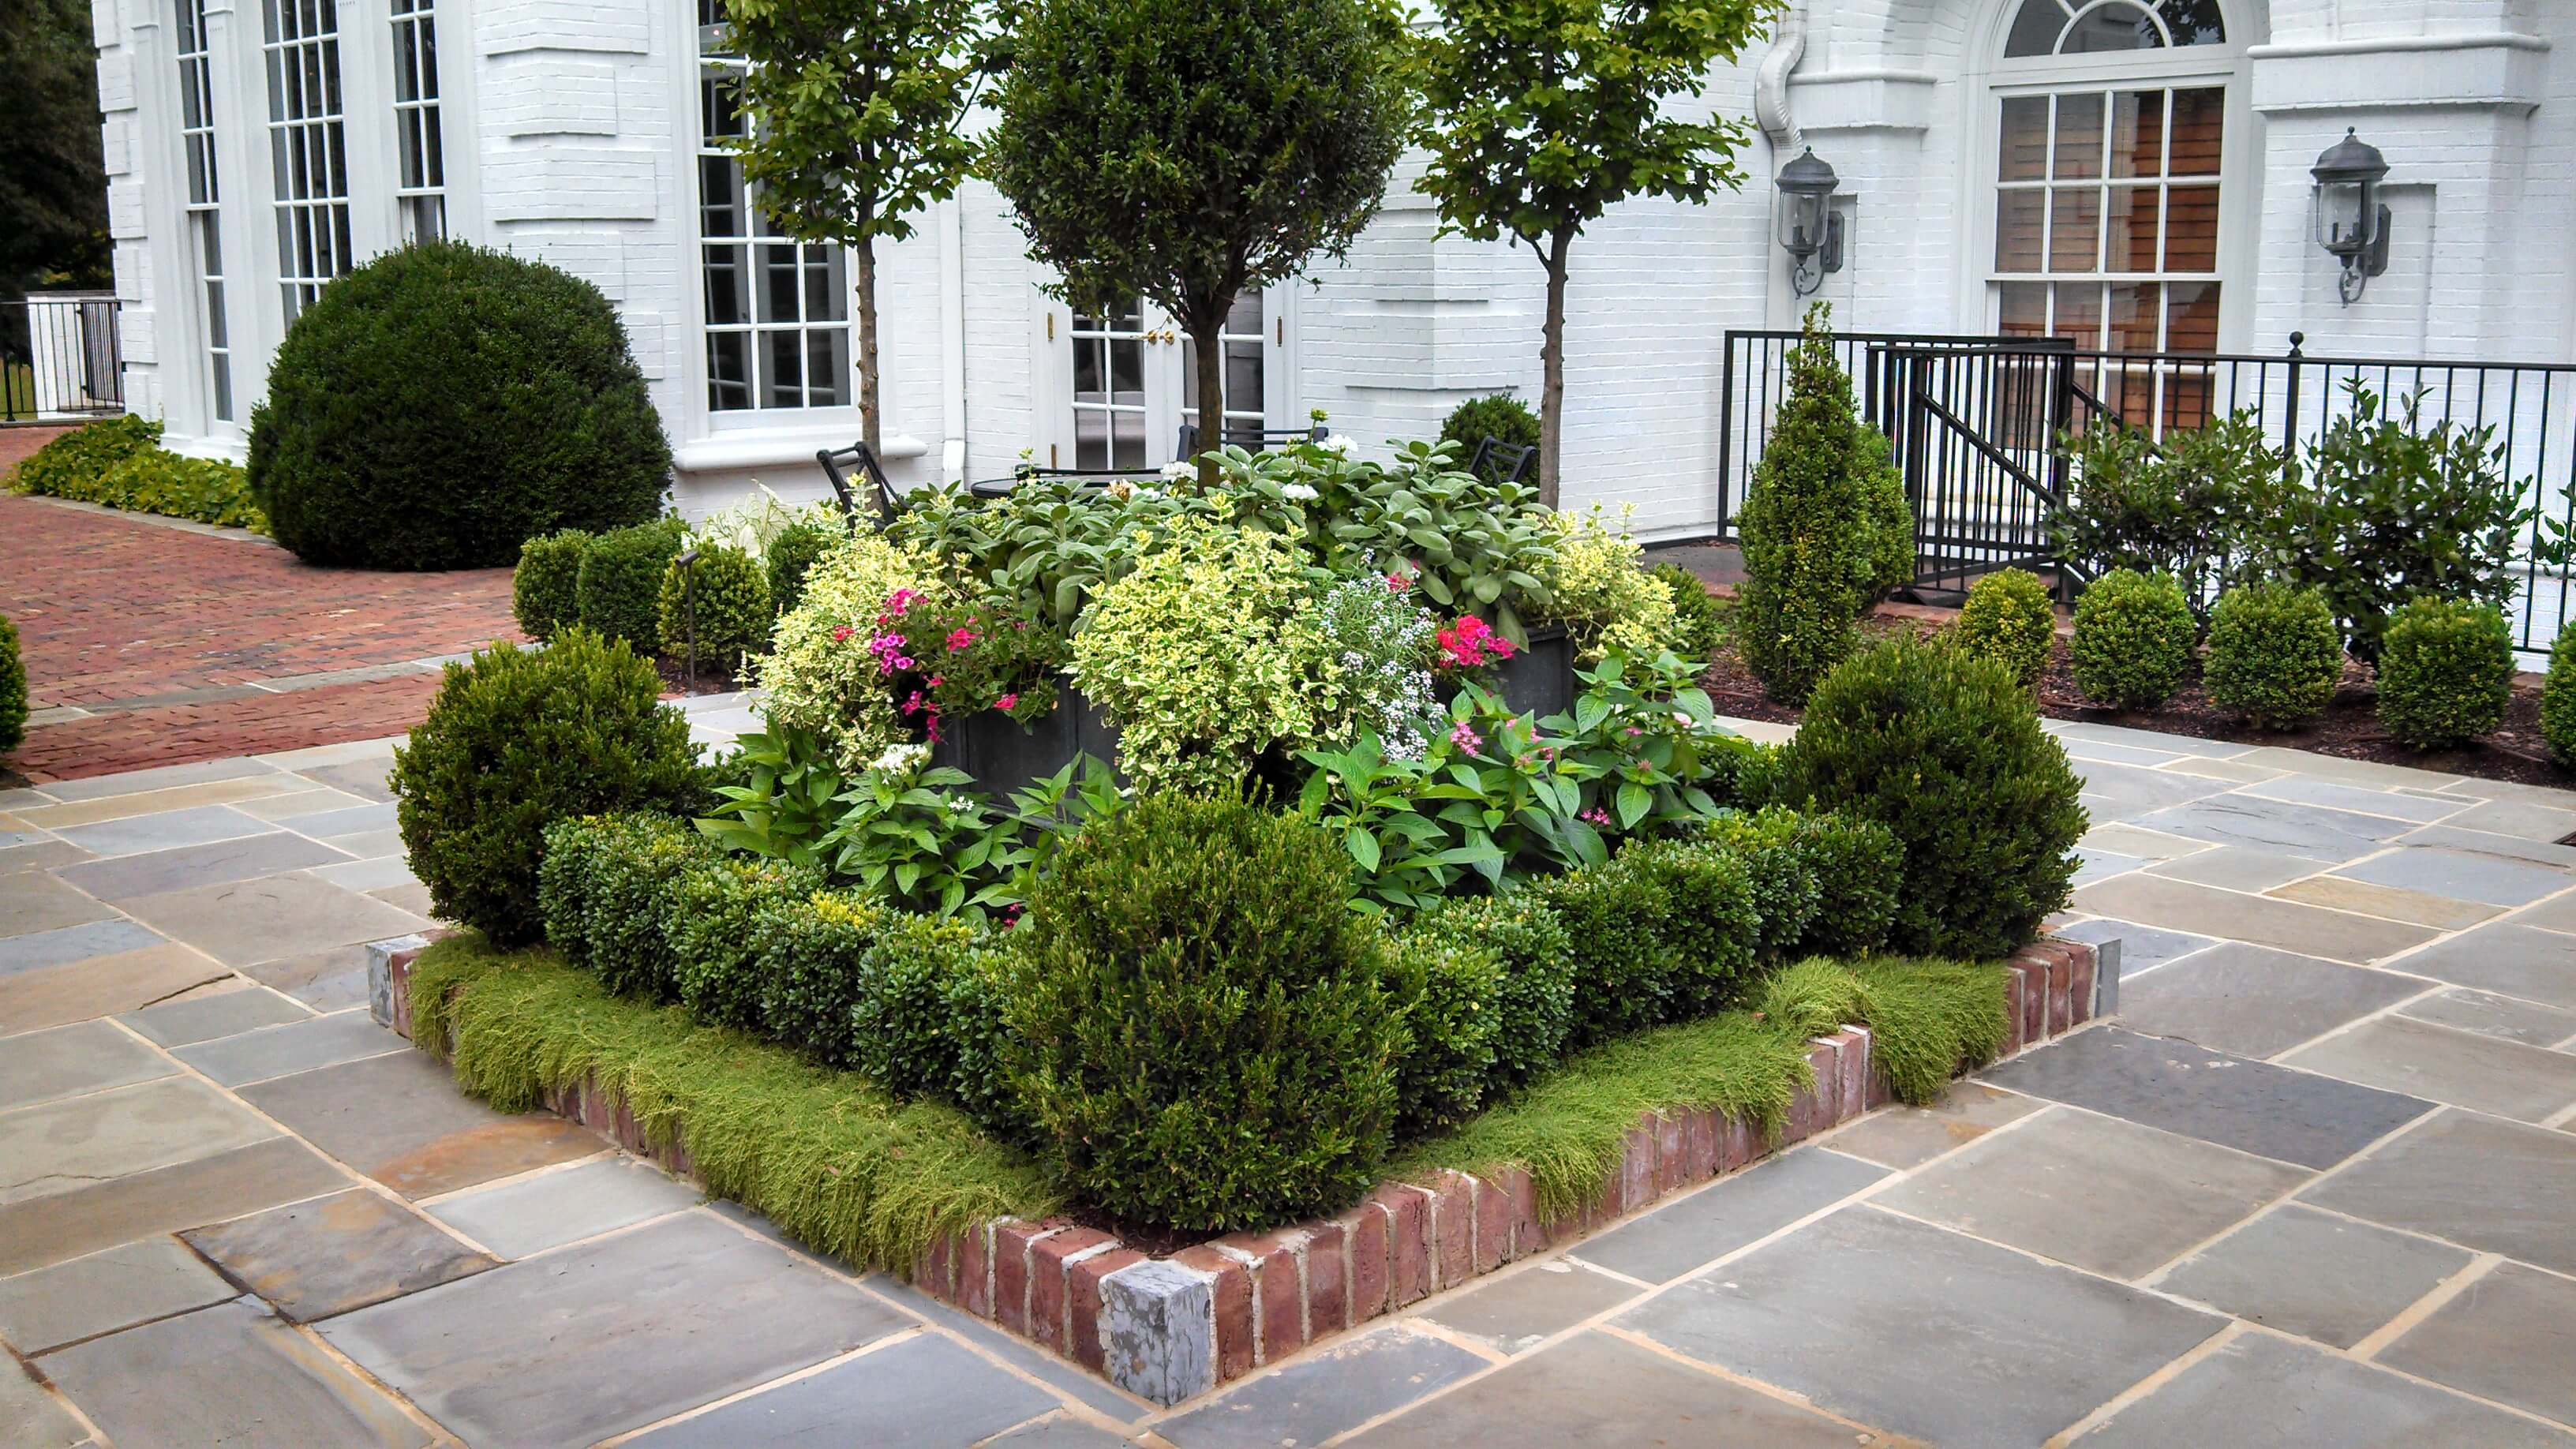 50 Best Front Yard Landscaping Ideas and Garden Designs ... on Front Yard And Backyard Landscaping Ideas id=64190